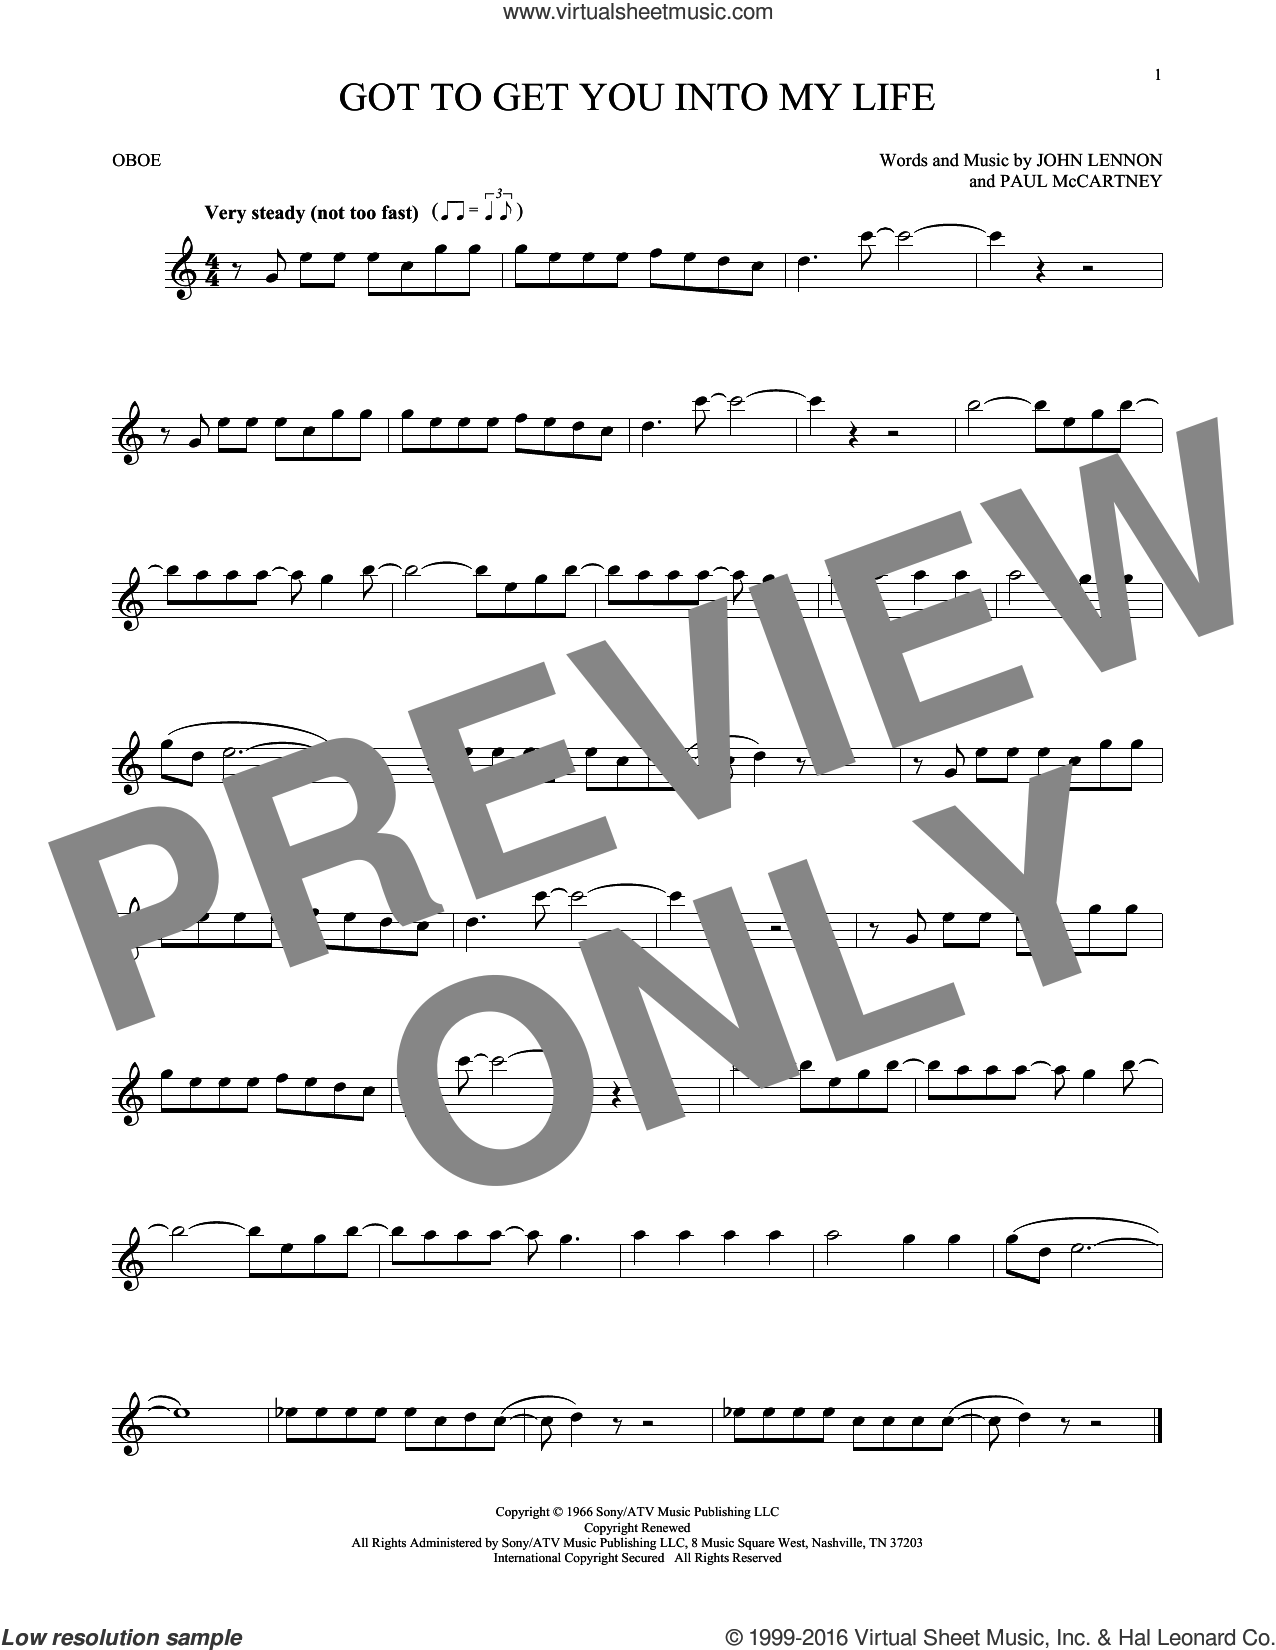 Got To Get You Into My Life sheet music for oboe solo by The Beatles, John Lennon and Paul McCartney, intermediate skill level